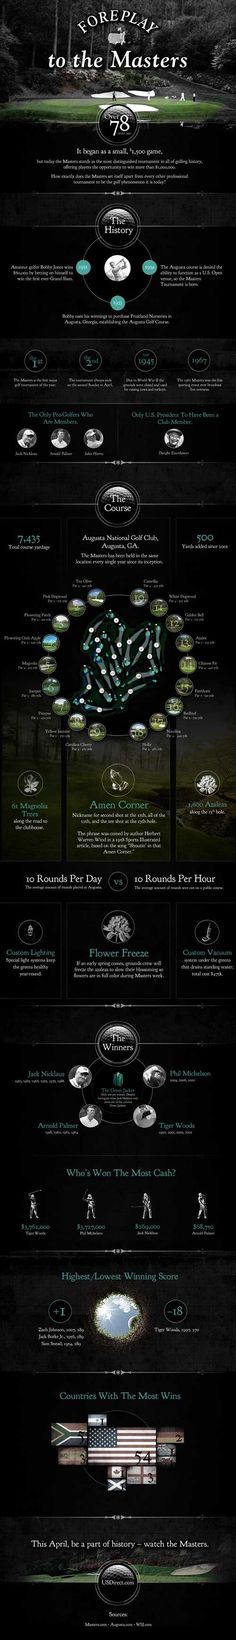 The 2012 Masters infographic, a glimpse of the tournament history